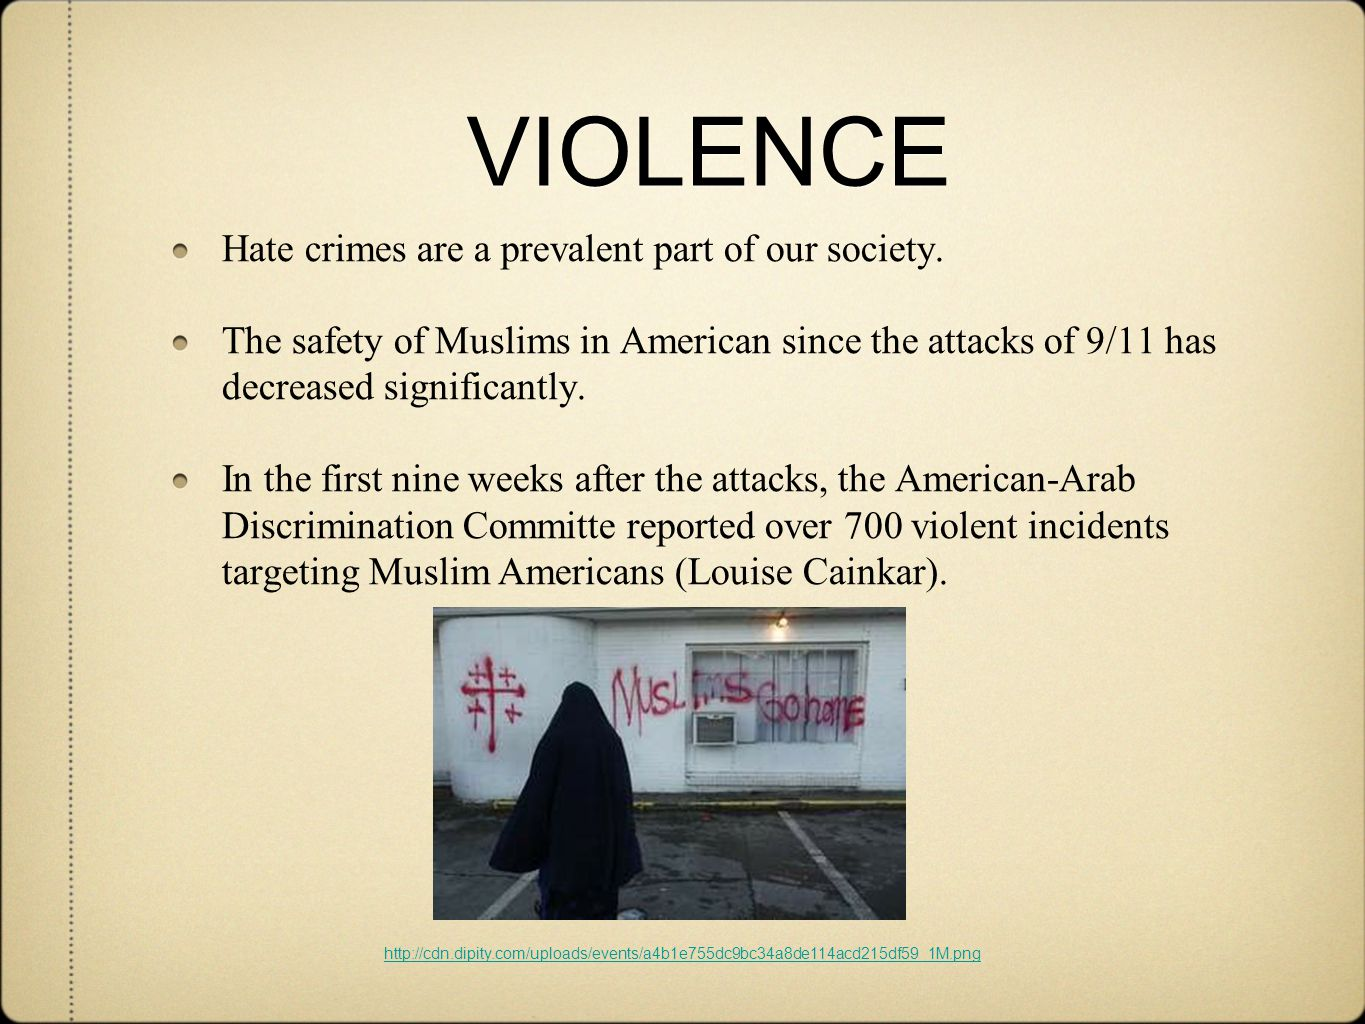 VIOLENCE Hate crimes are a prevalent part of our society.